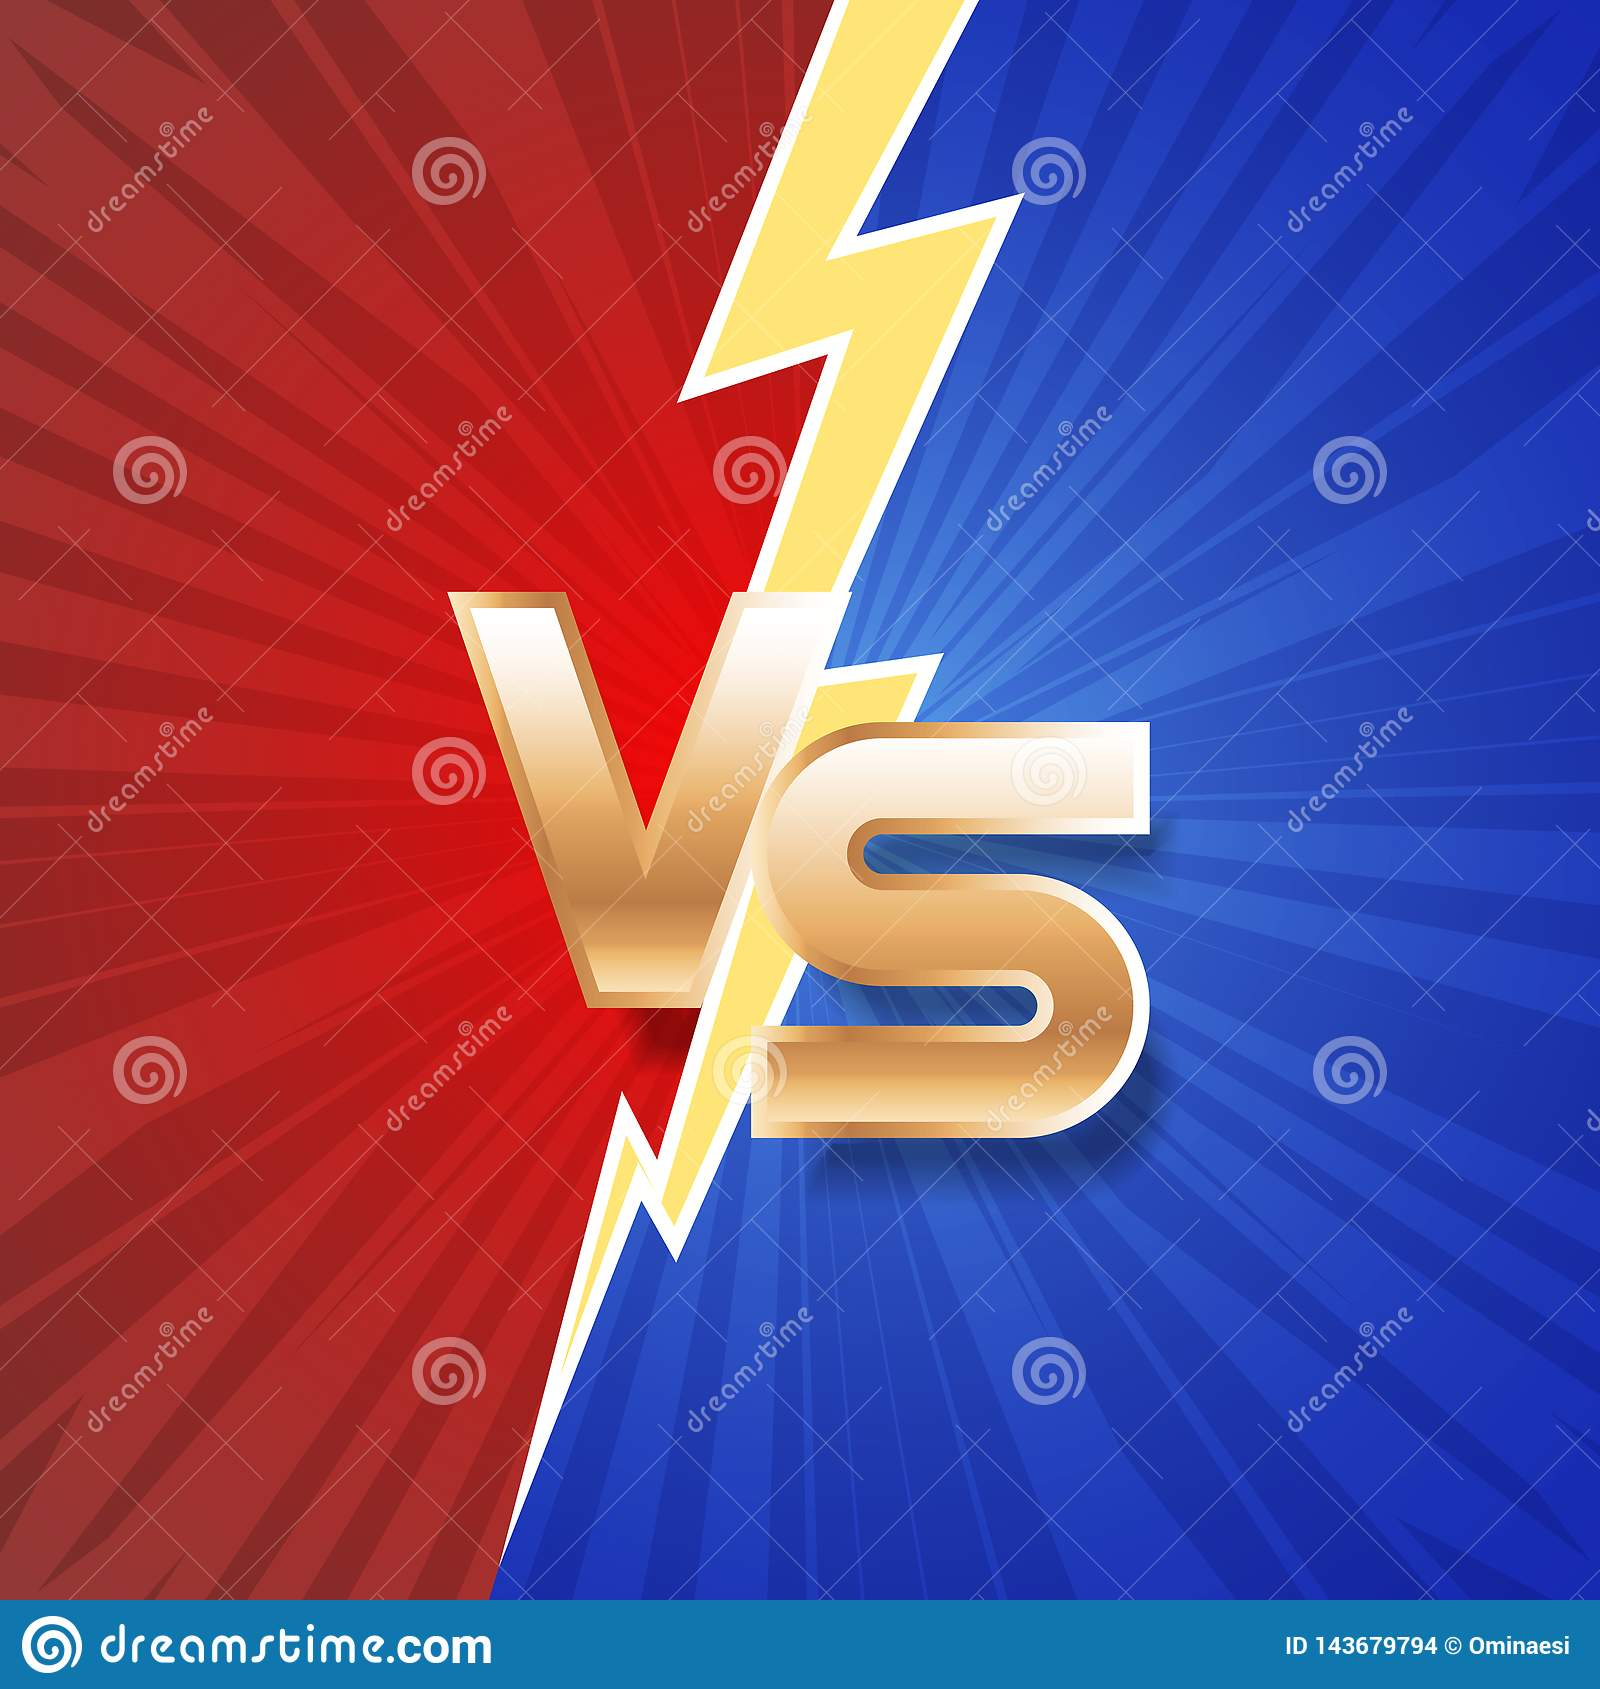 Lightning strike vs letter energy conflict game versus screen action fight competition background vector graphic